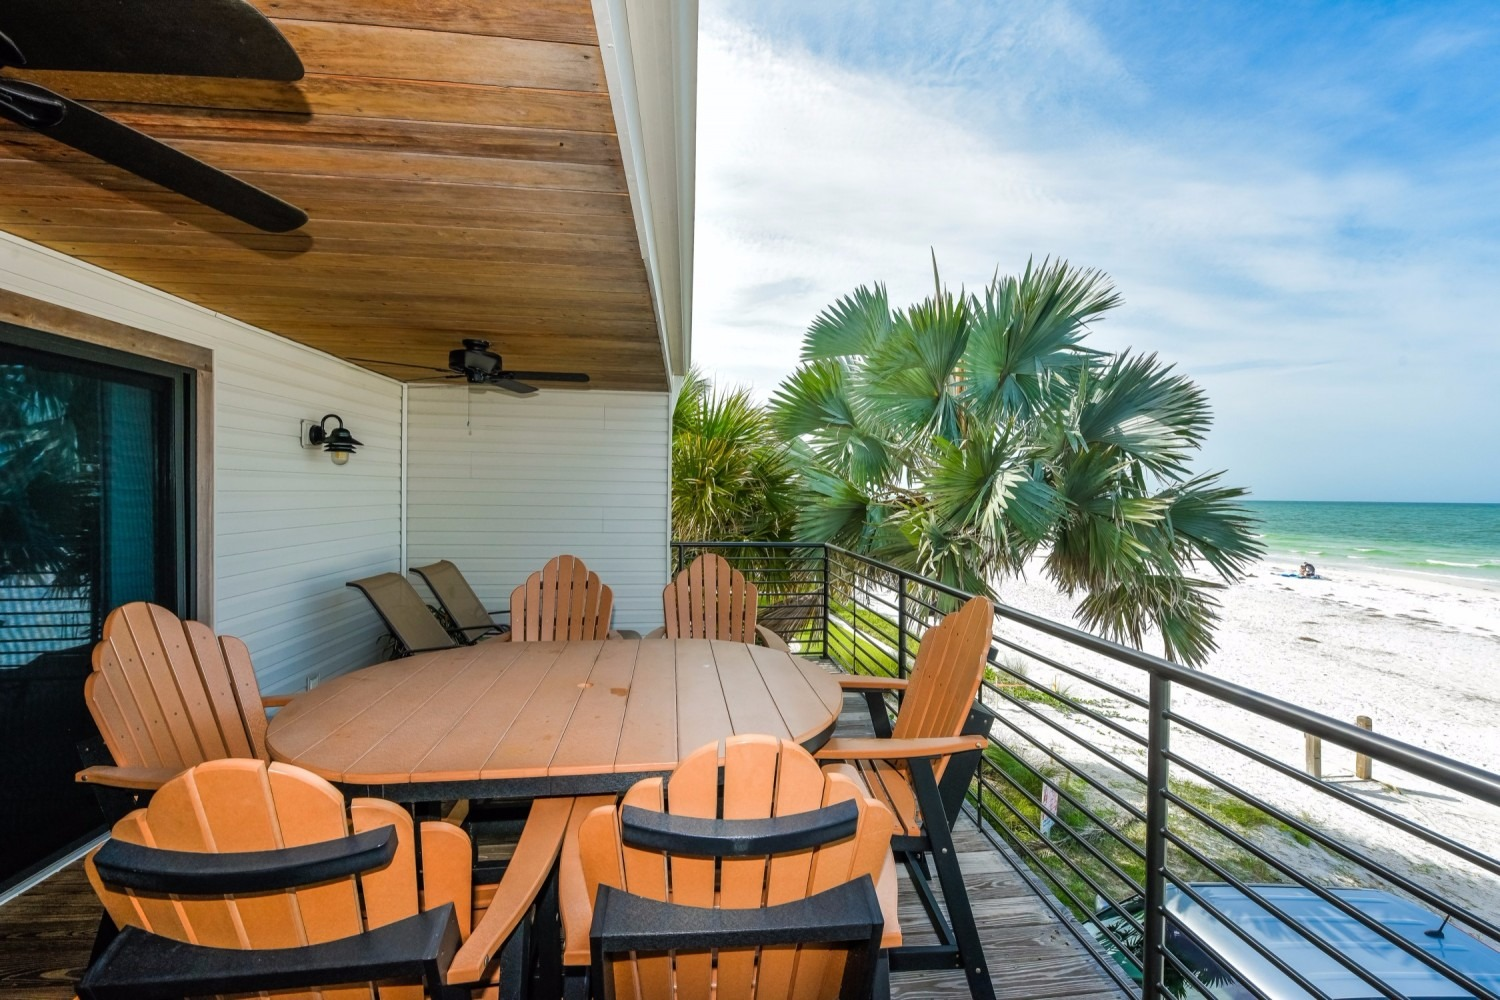 4 Bedroom Beachfront Home-Sleeps 12 - Siesta Key Vacation Rentals